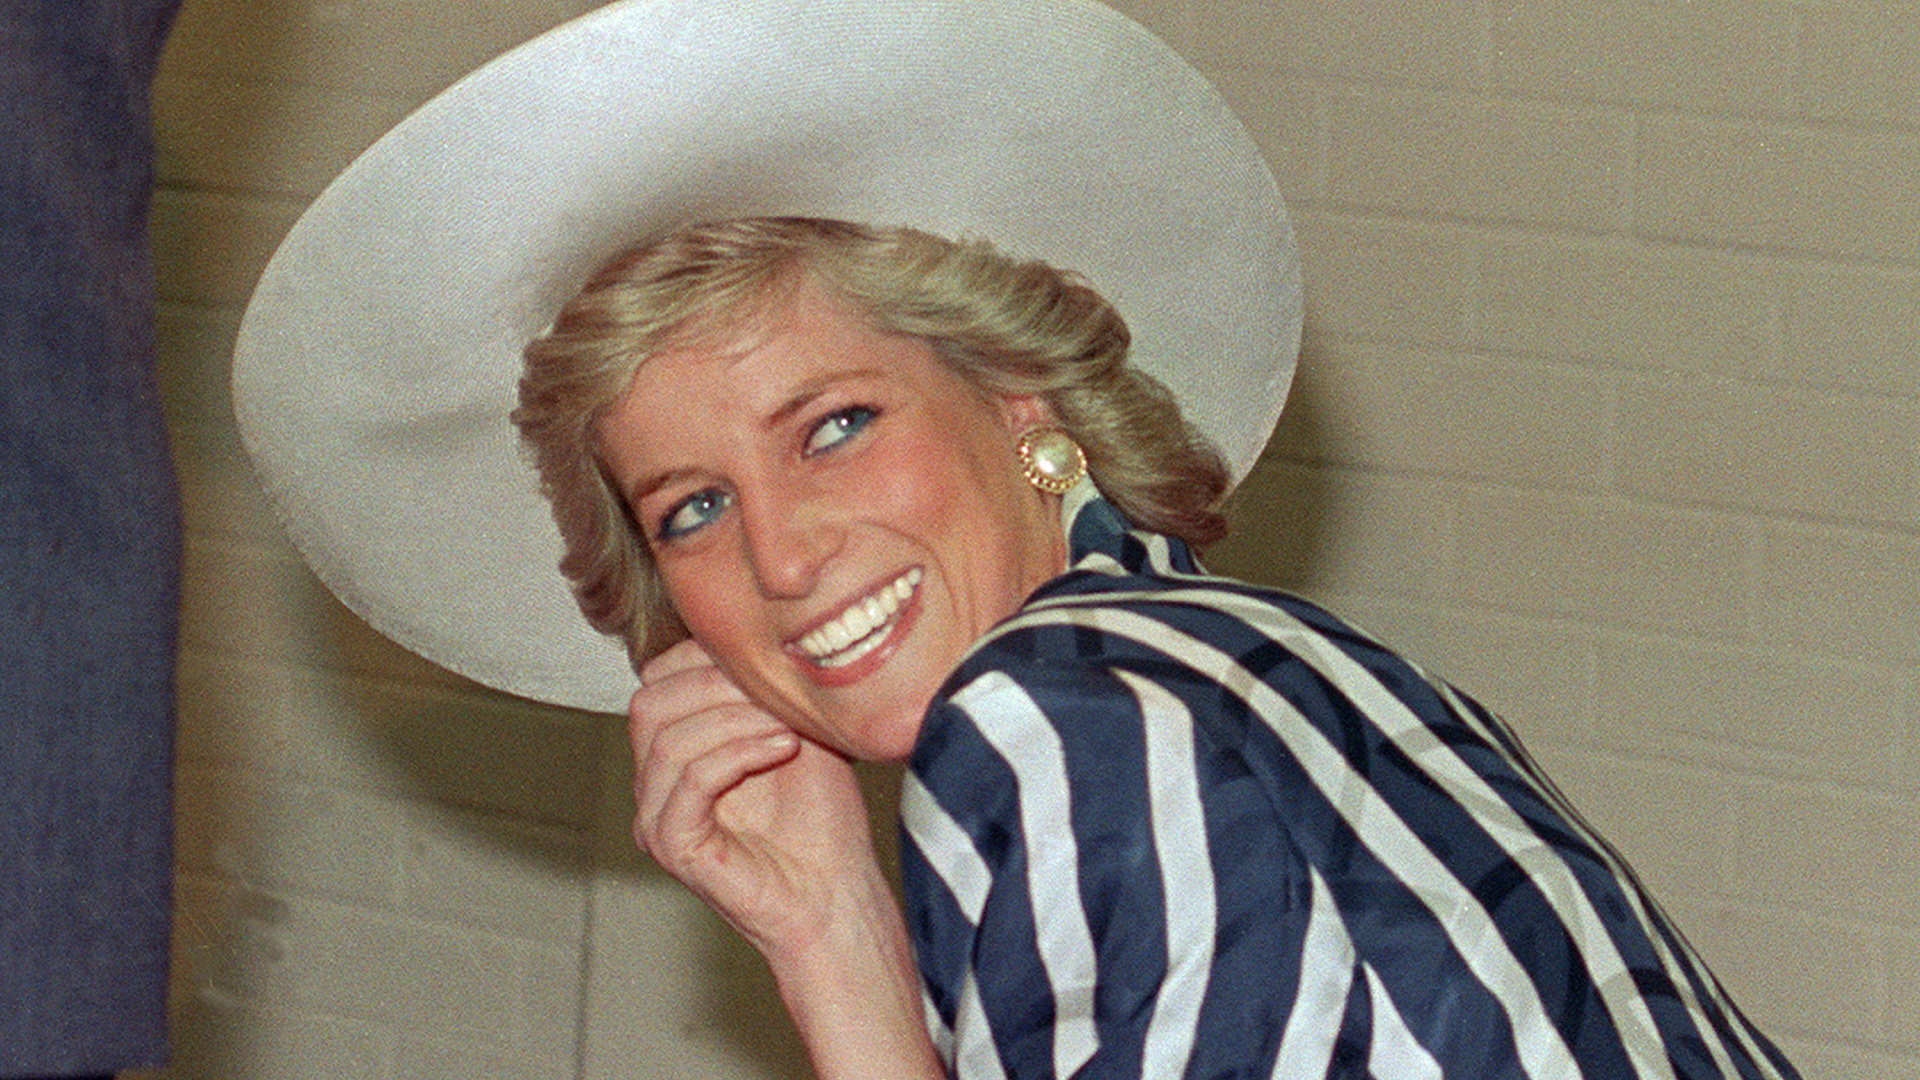 Remembering Diana: the Princess who continues to inspire the world 24 years on